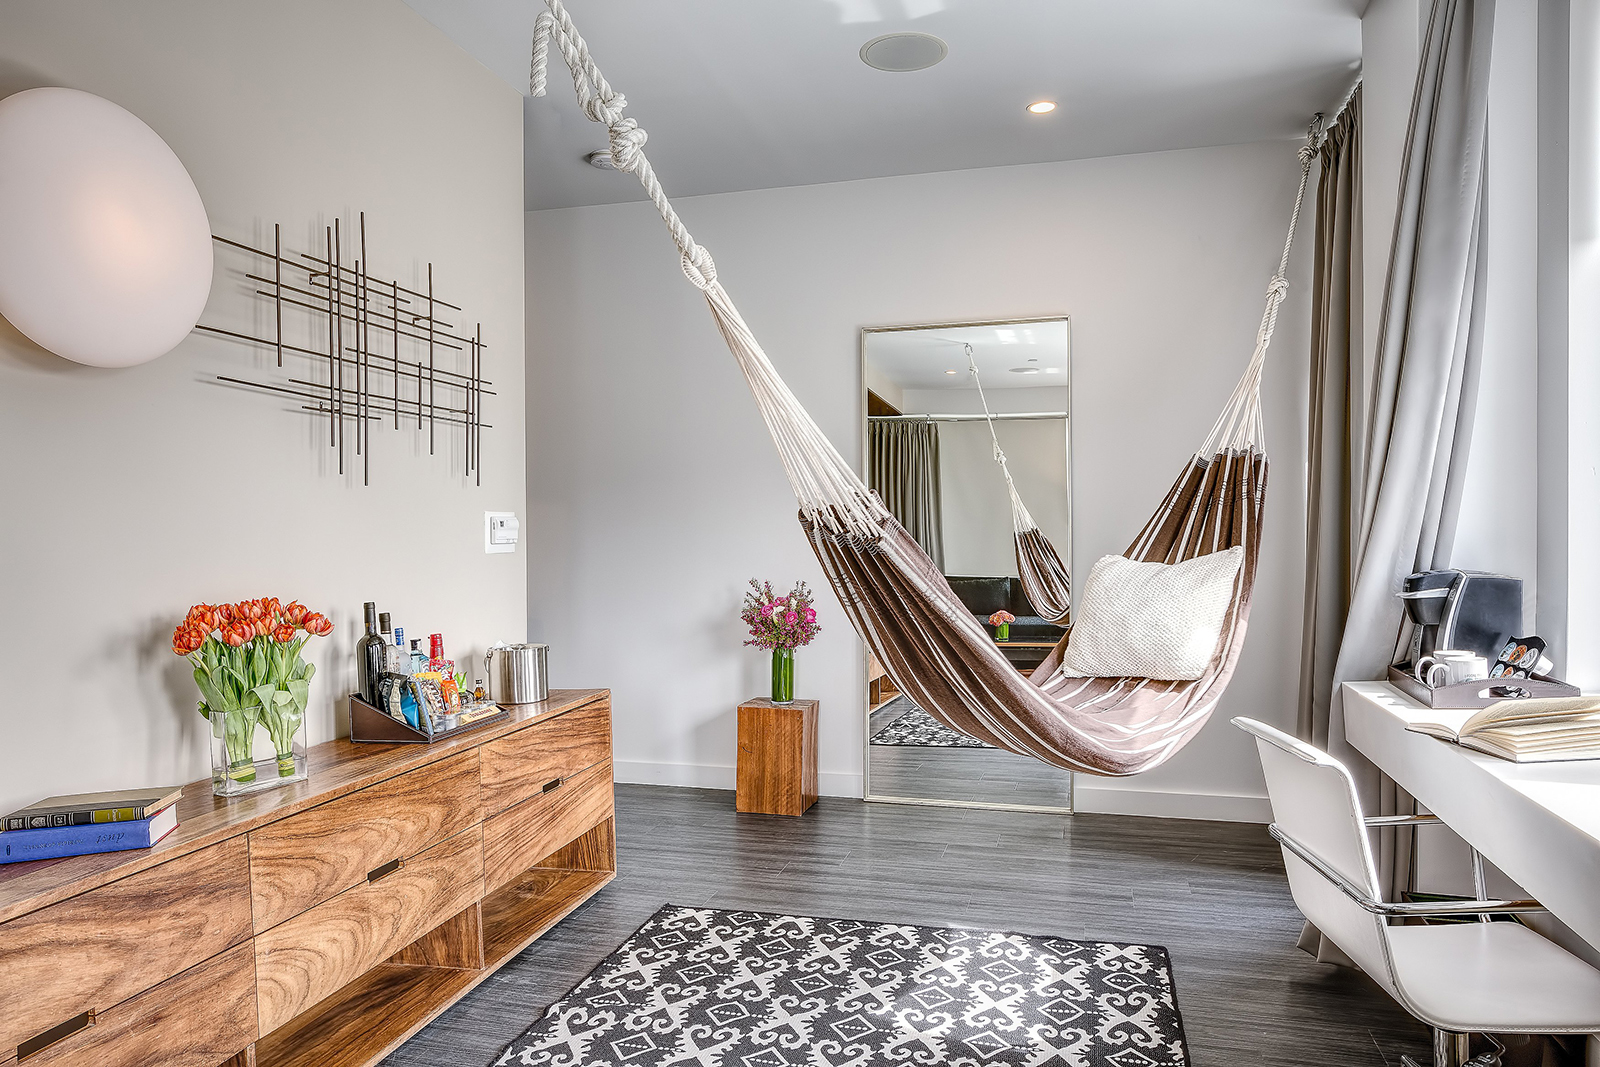 Nu hotel brooklyn updates all 93 guestrooms for Hip boutique hotels